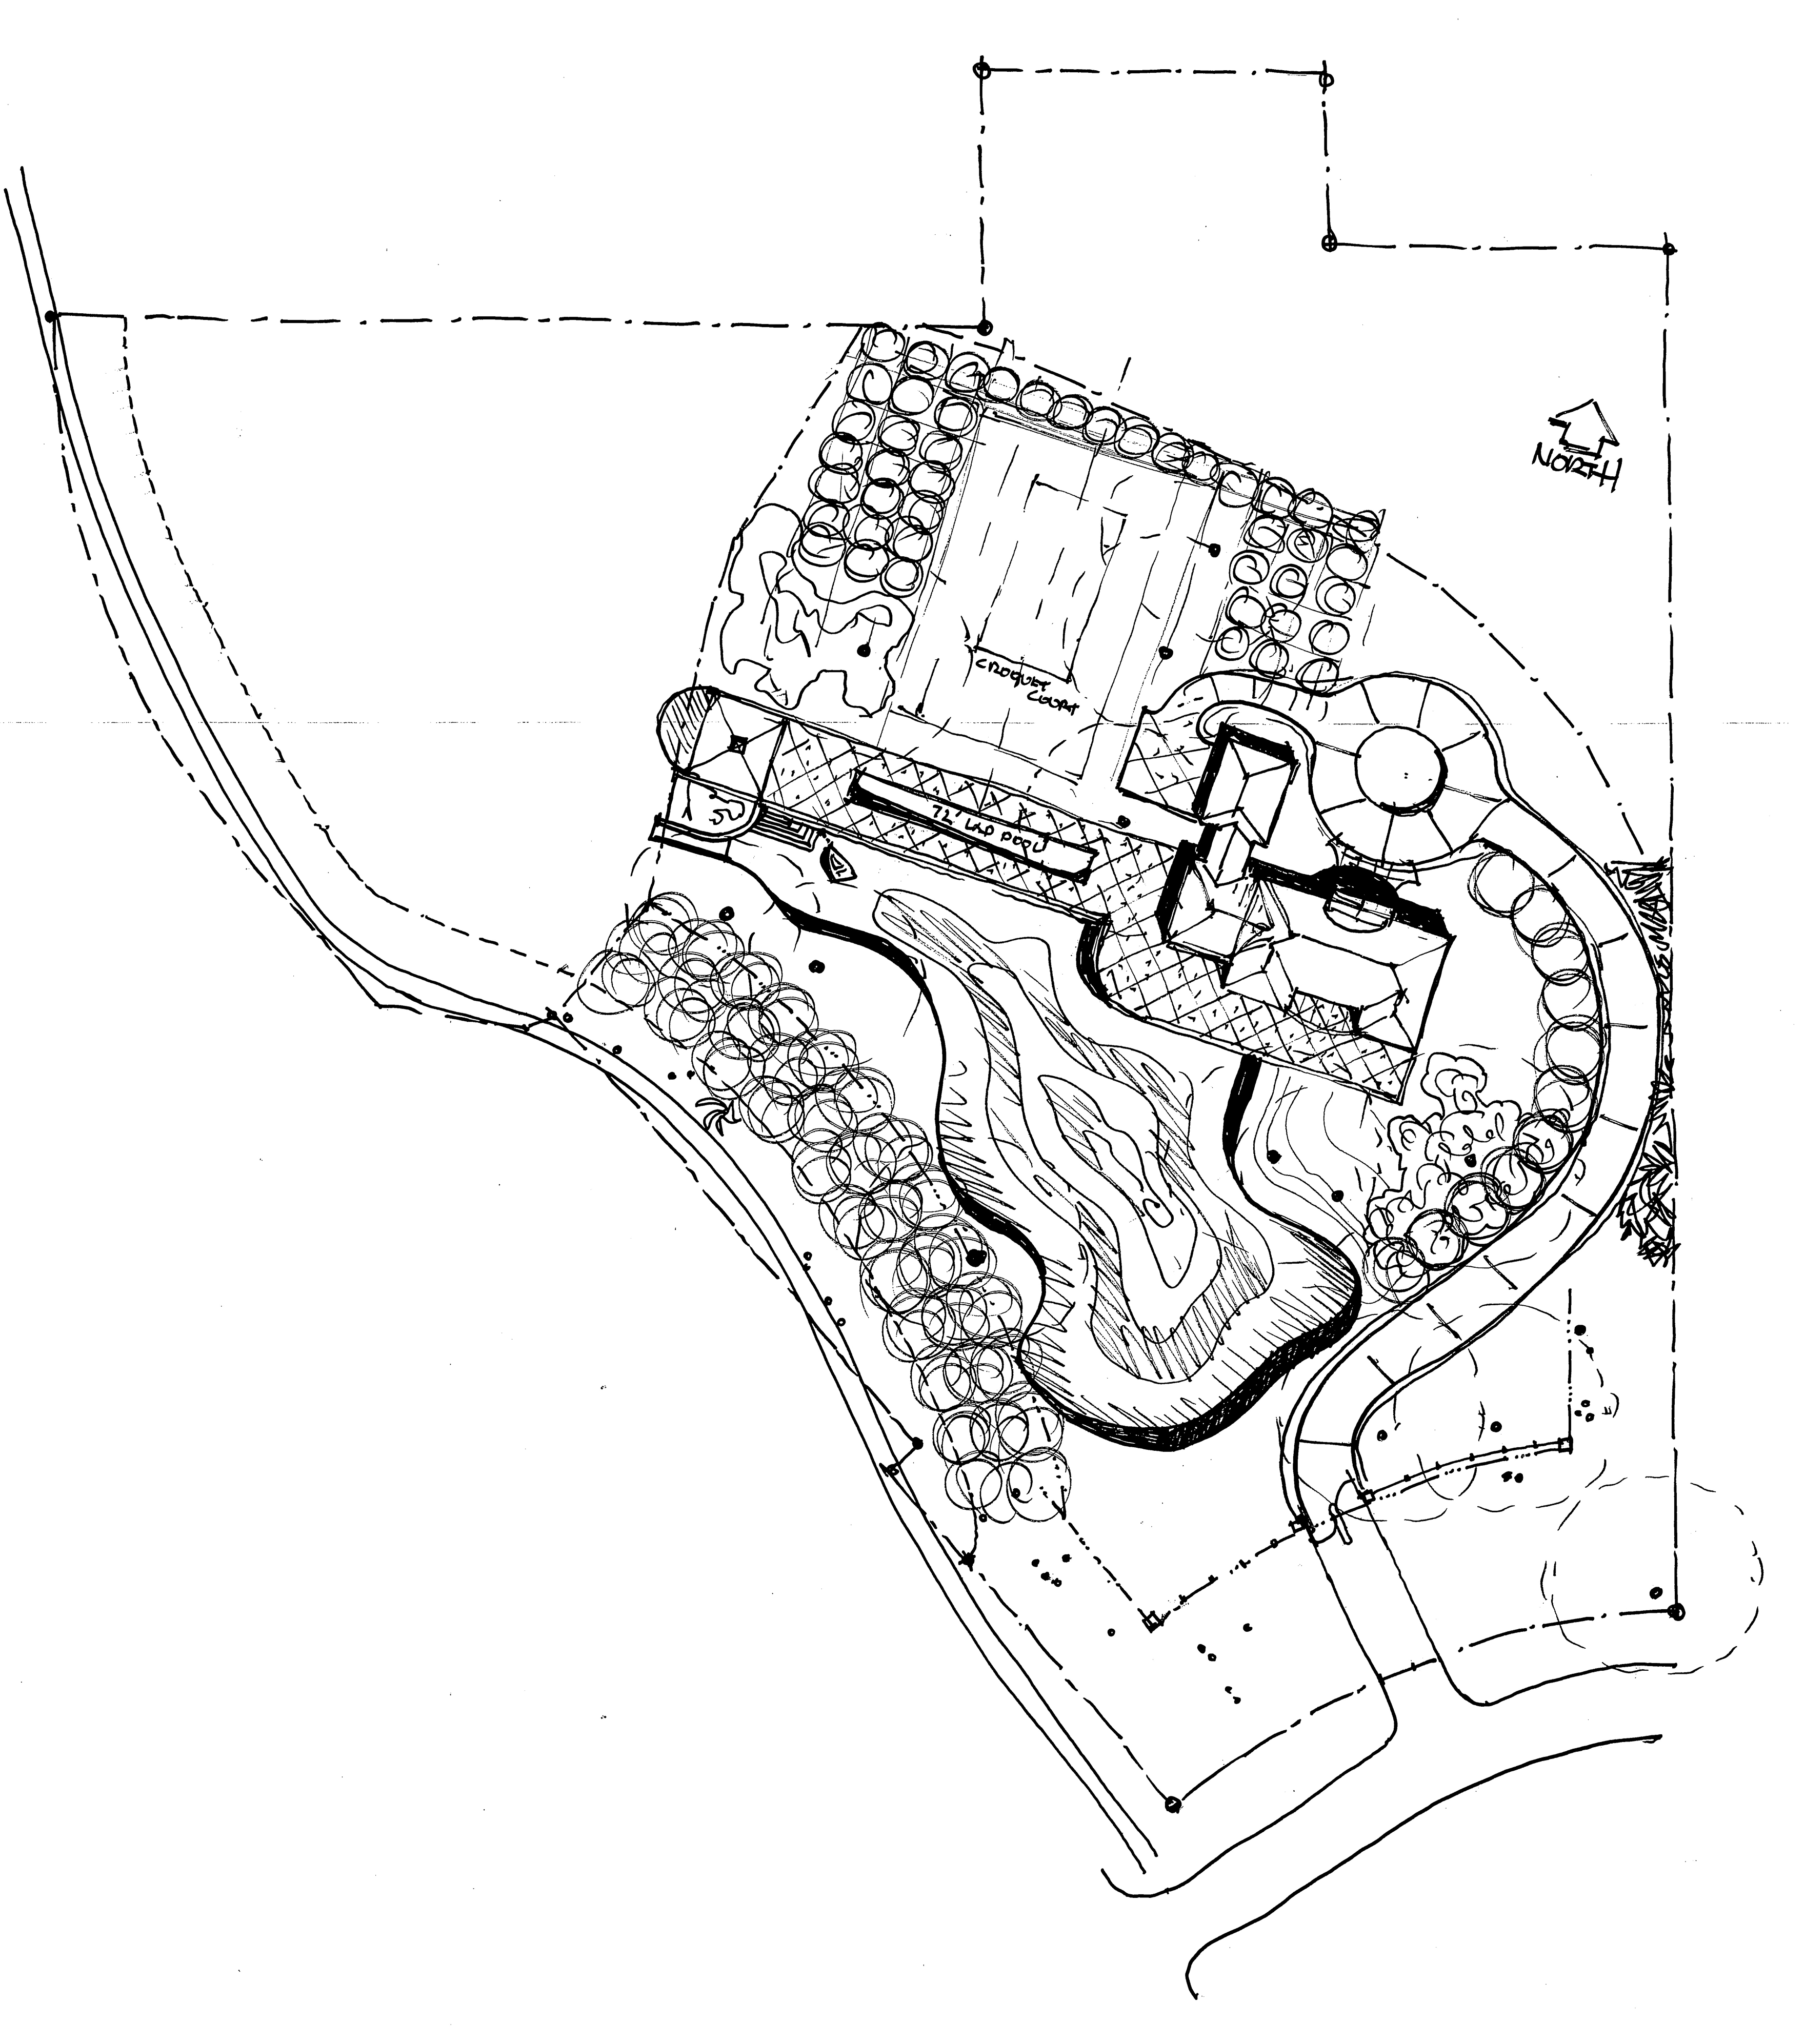 The Tillandsia Site Plan features a 5,000 sq.ft., four bedroom, five bath home, oversize three car garage with New England heritage